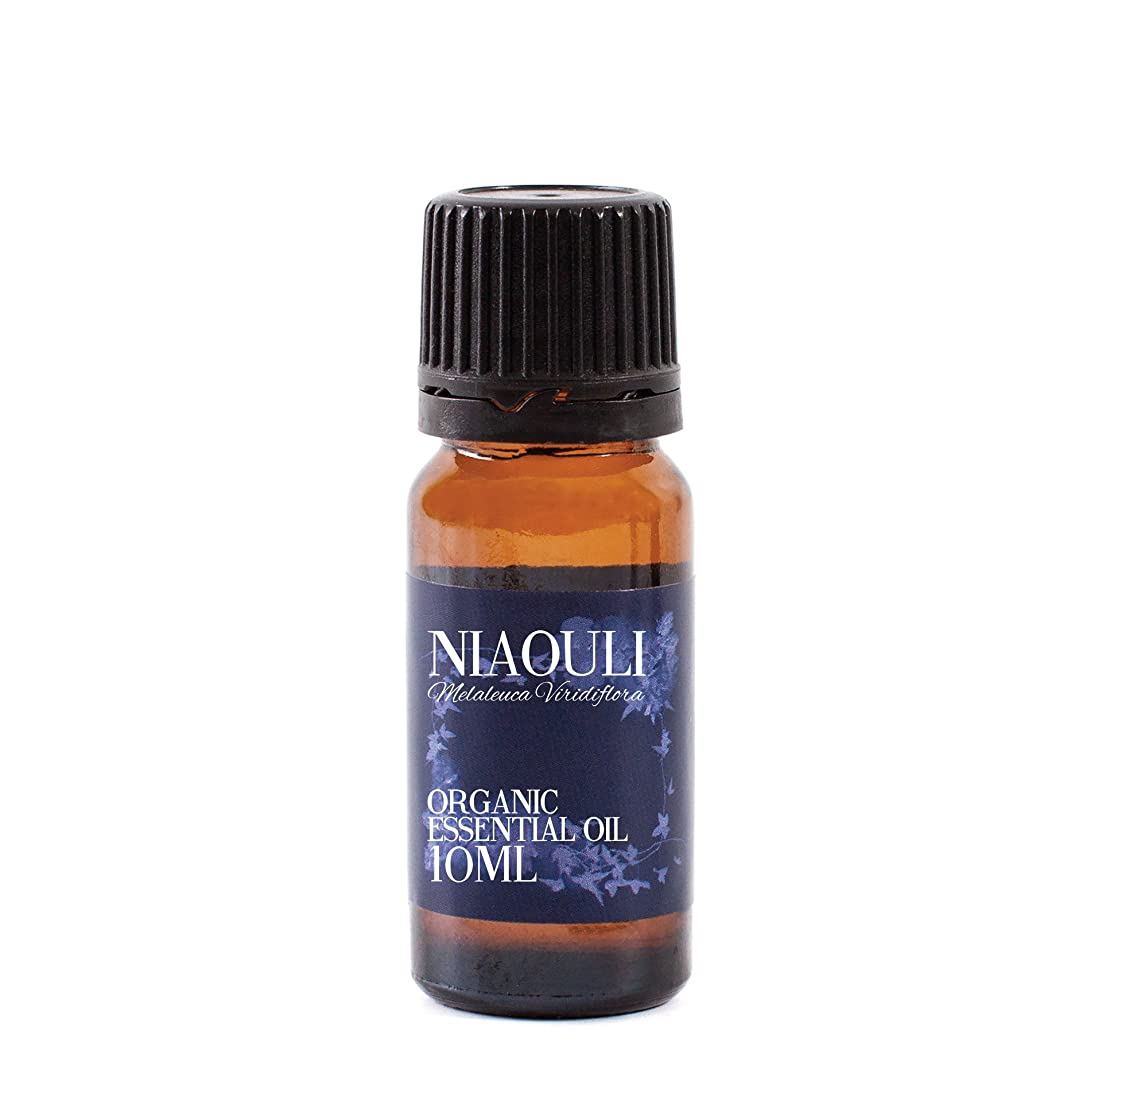 接ぎ木クラシックレンチNiaouli Organic Essential Oil - 10ml - 100% Pure